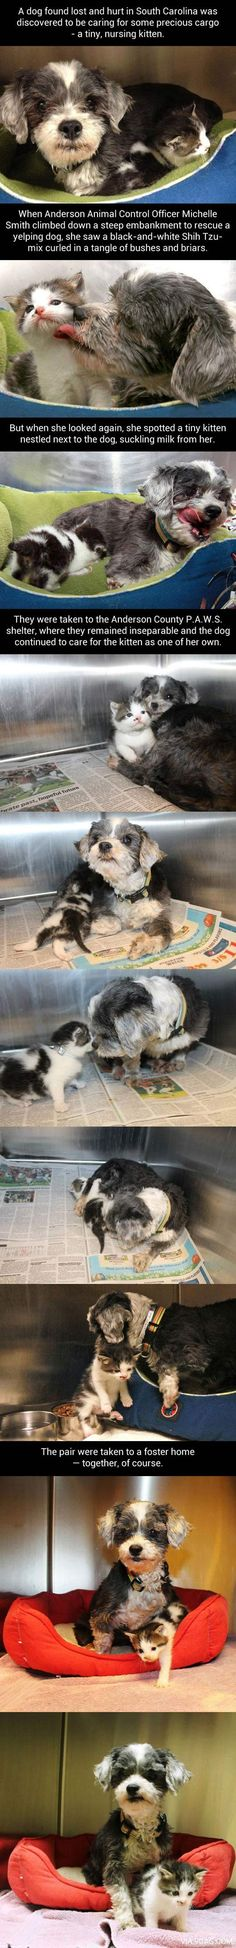 Dog caring for kitten